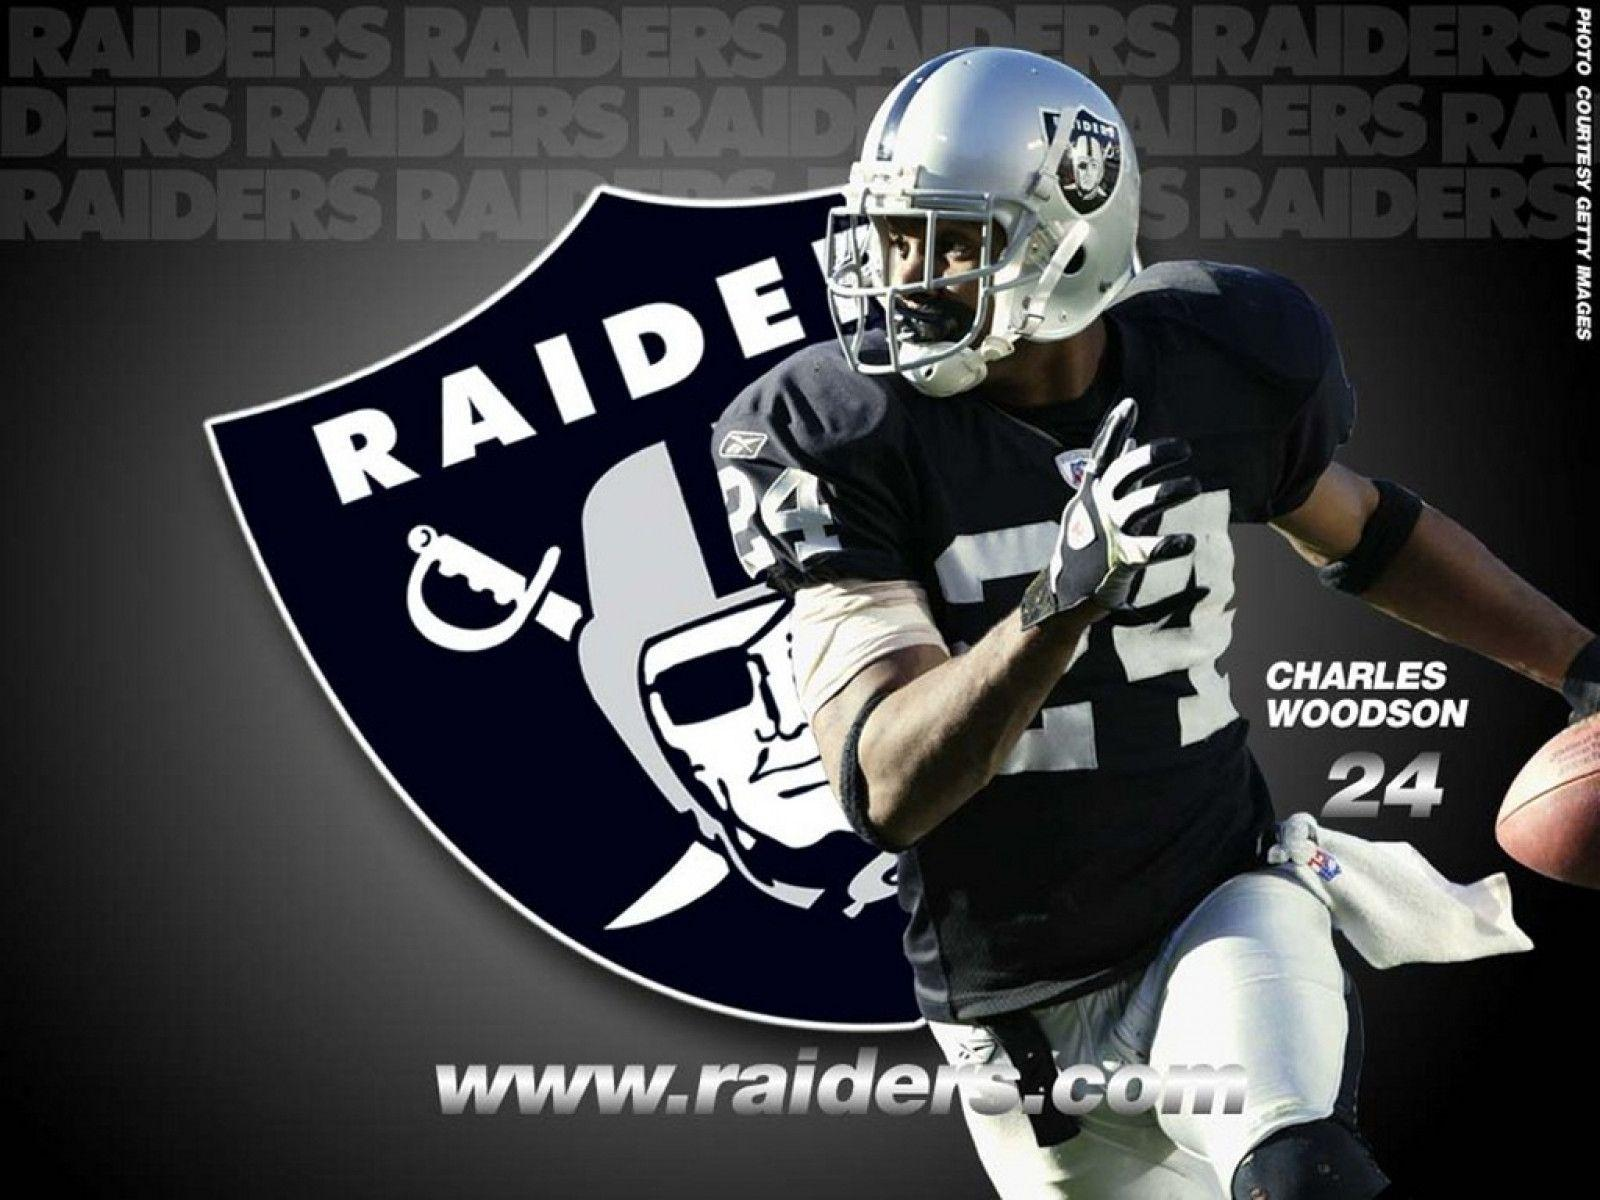 Oakland Raiders Wallpapers at Wallpaperist